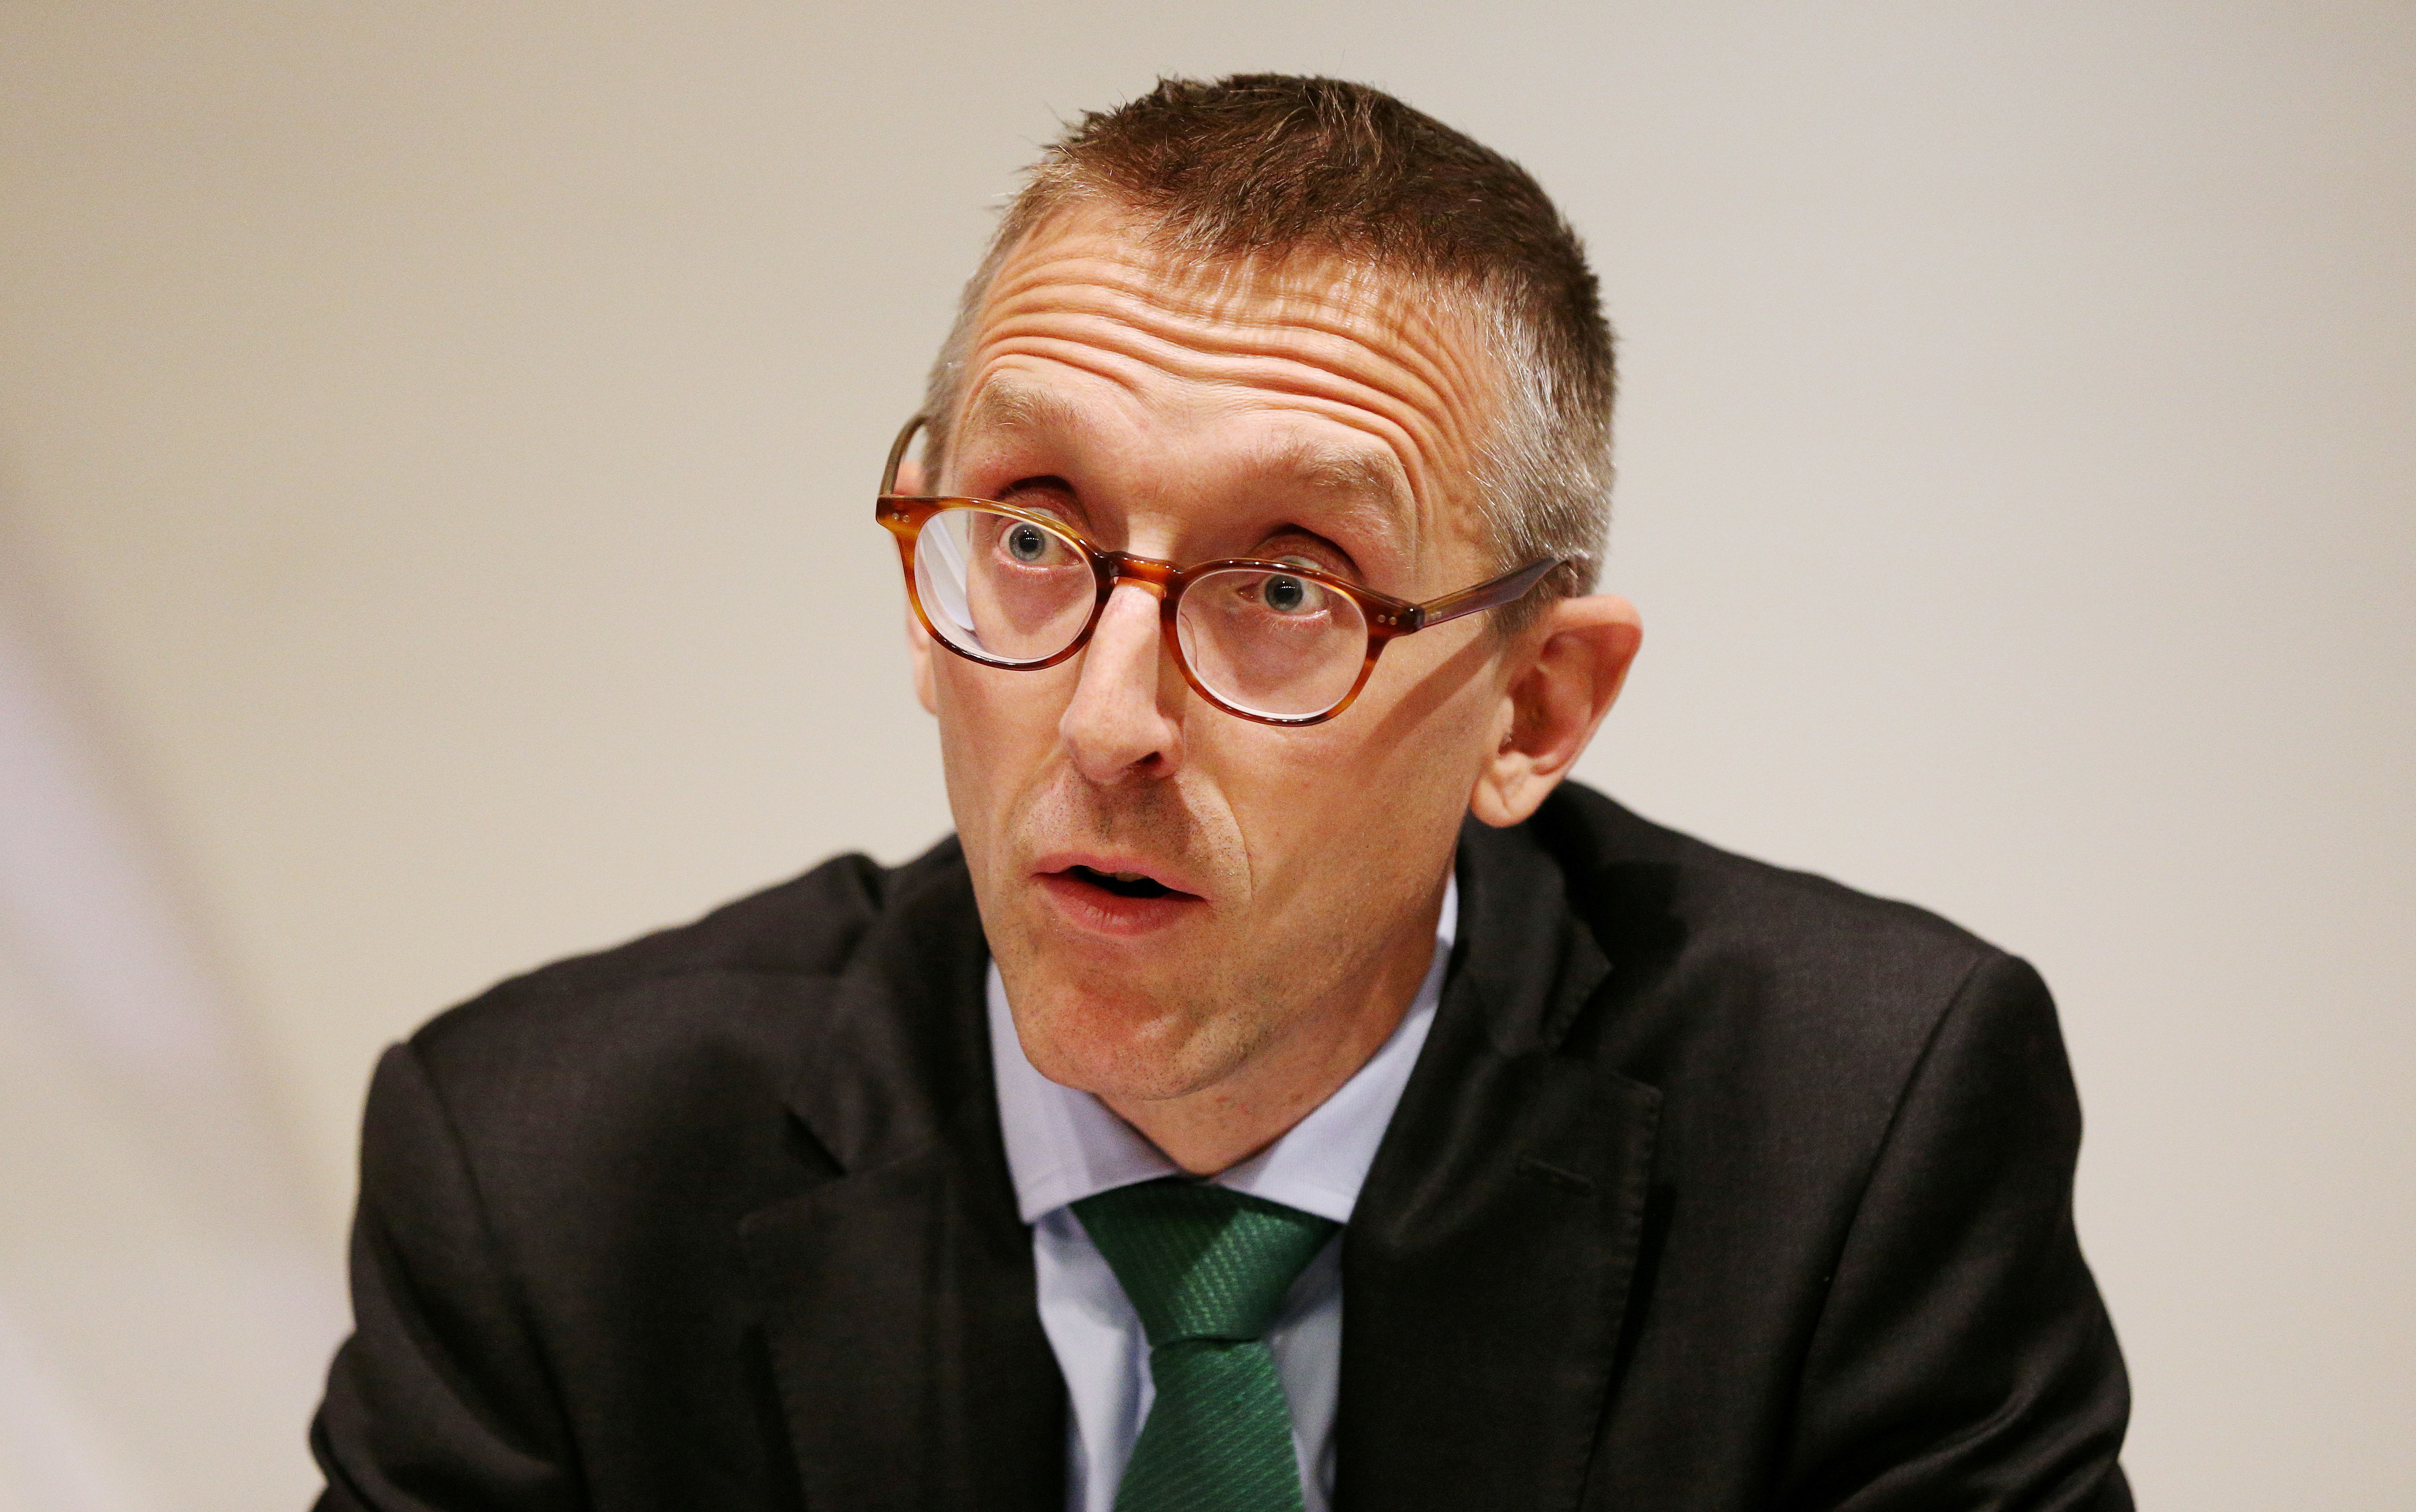 Britain's Deputy Governor for Prudential Regulation and Chief Executive Officer of the Prudential Regulation Authority Sam Woods speaks during the Bank of England's financial stability report at the Bank of England in the City of London, Britain June 27, 2017.  REUTERS/ Jonathan Brady/Pool/File Photo